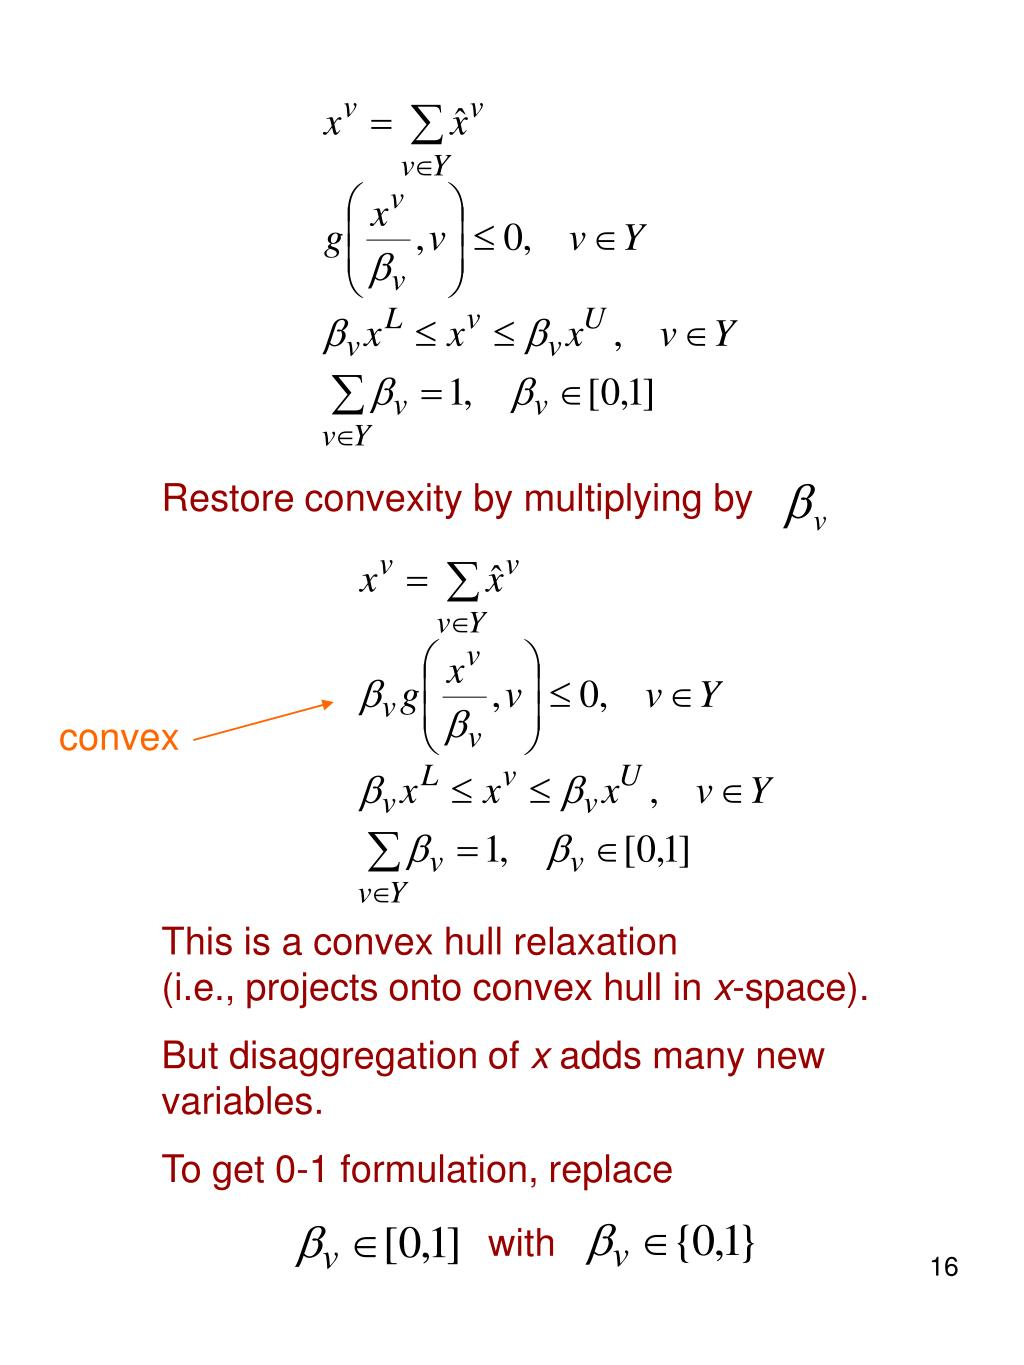 Restore convexity by multiplying by